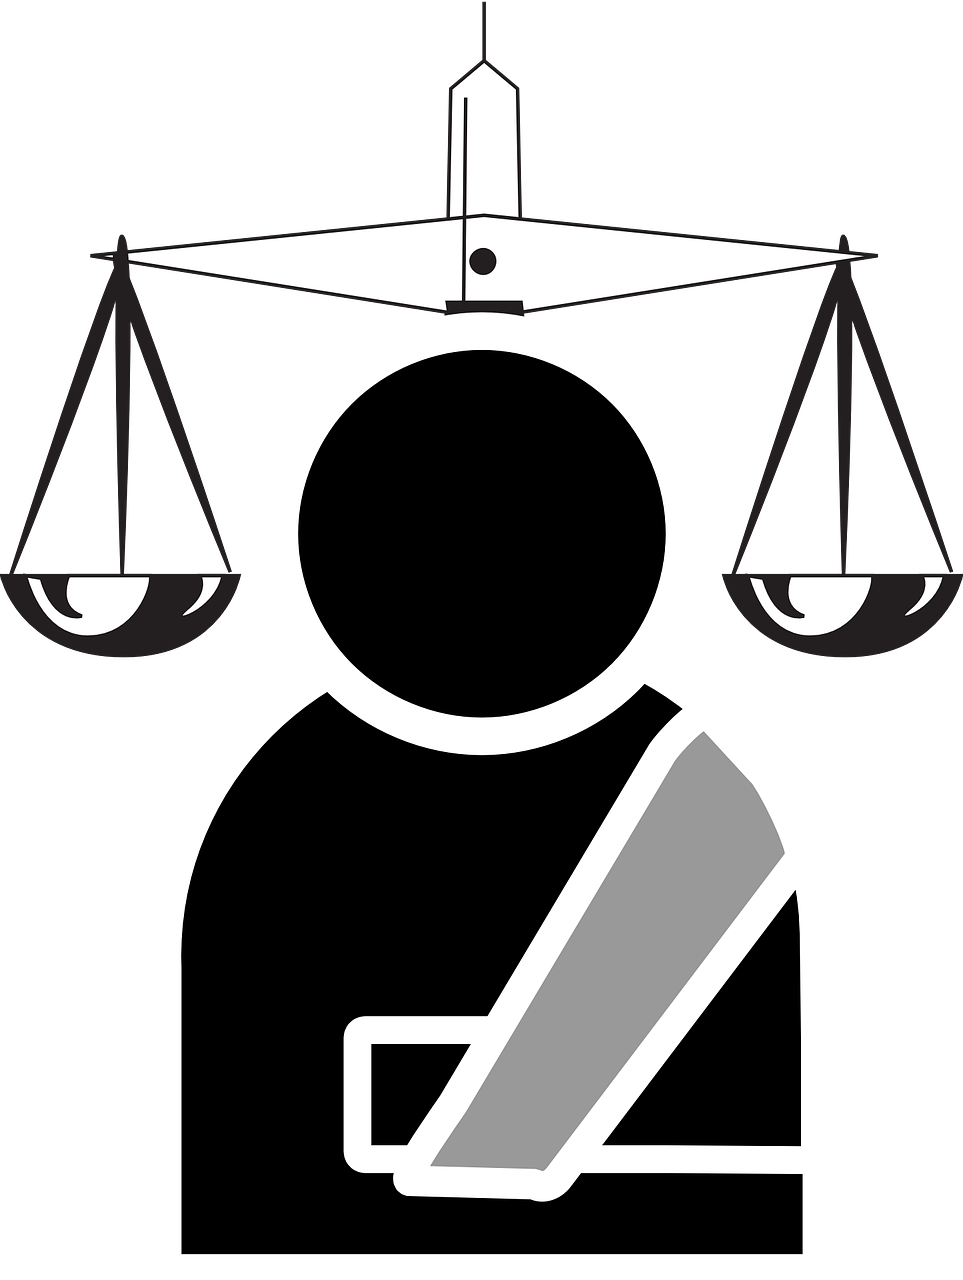 Court clipart black and white. Contingent workforce strategies ruling